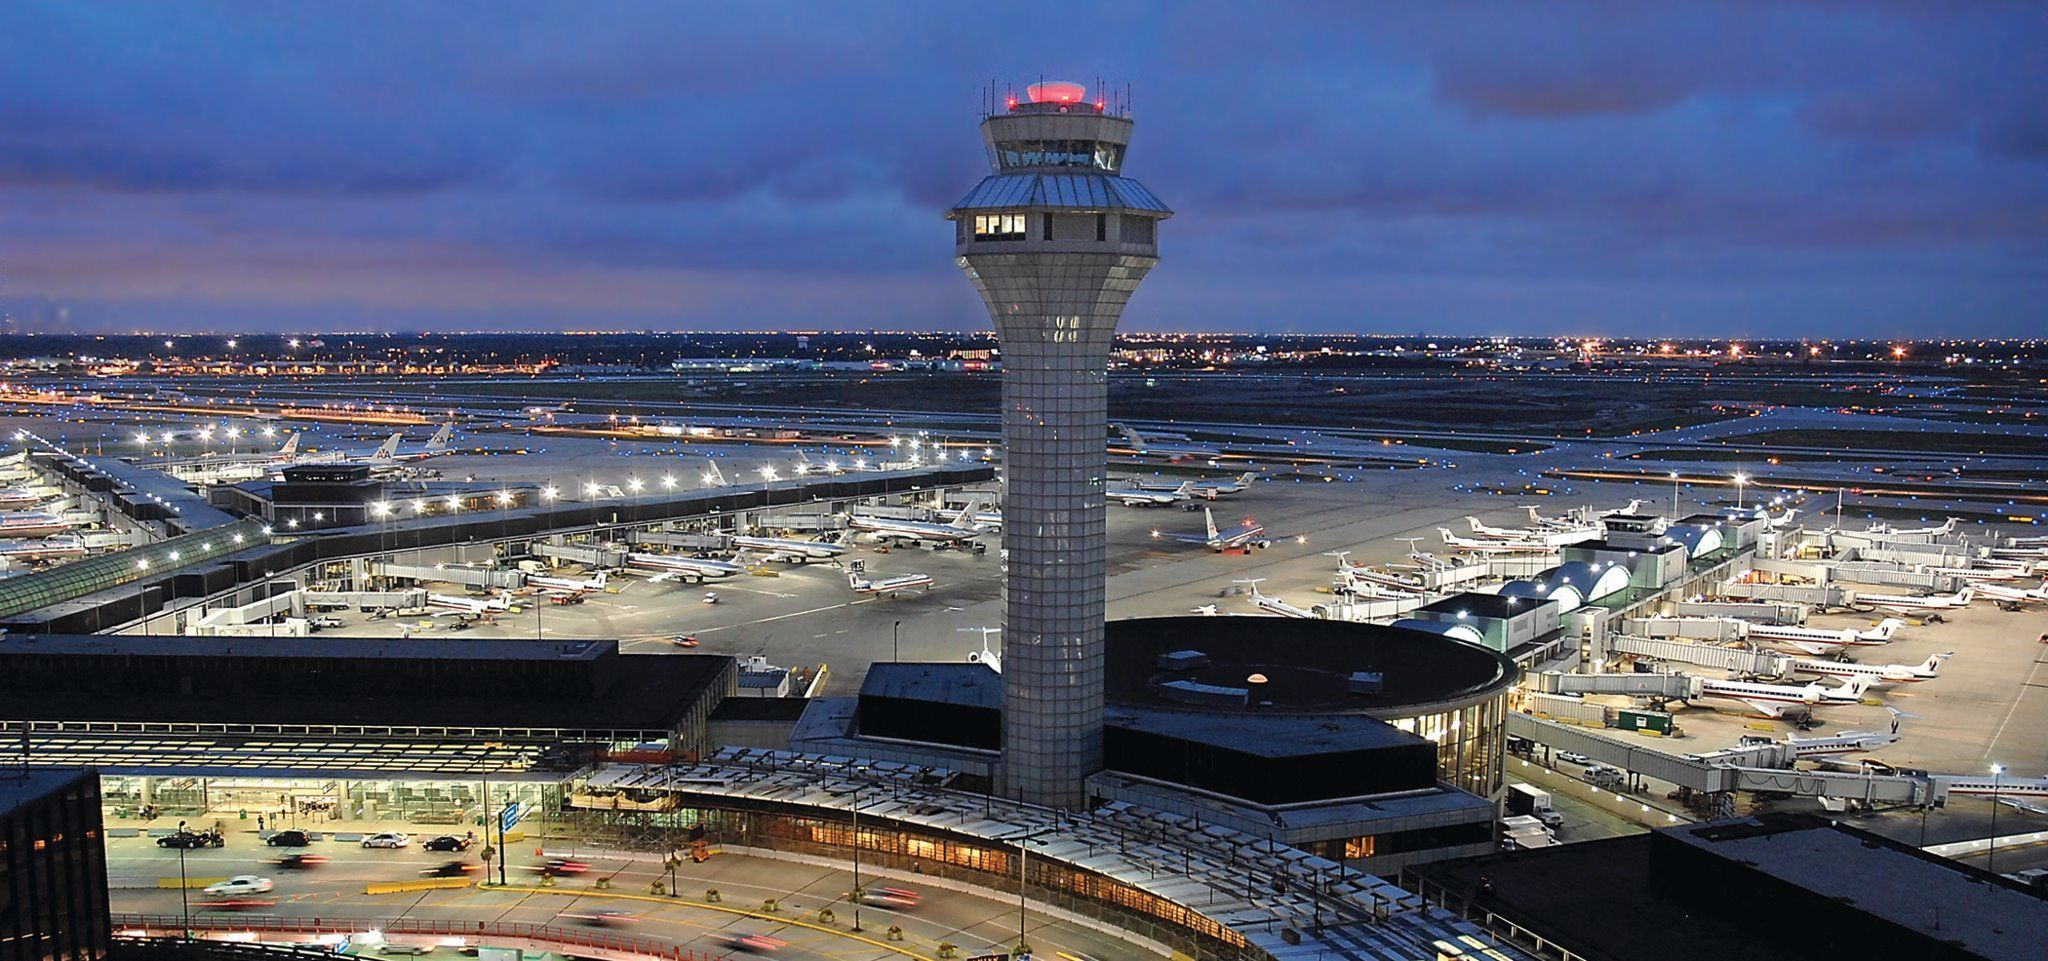 Chicago O'Hare International Airport Bonds Airports